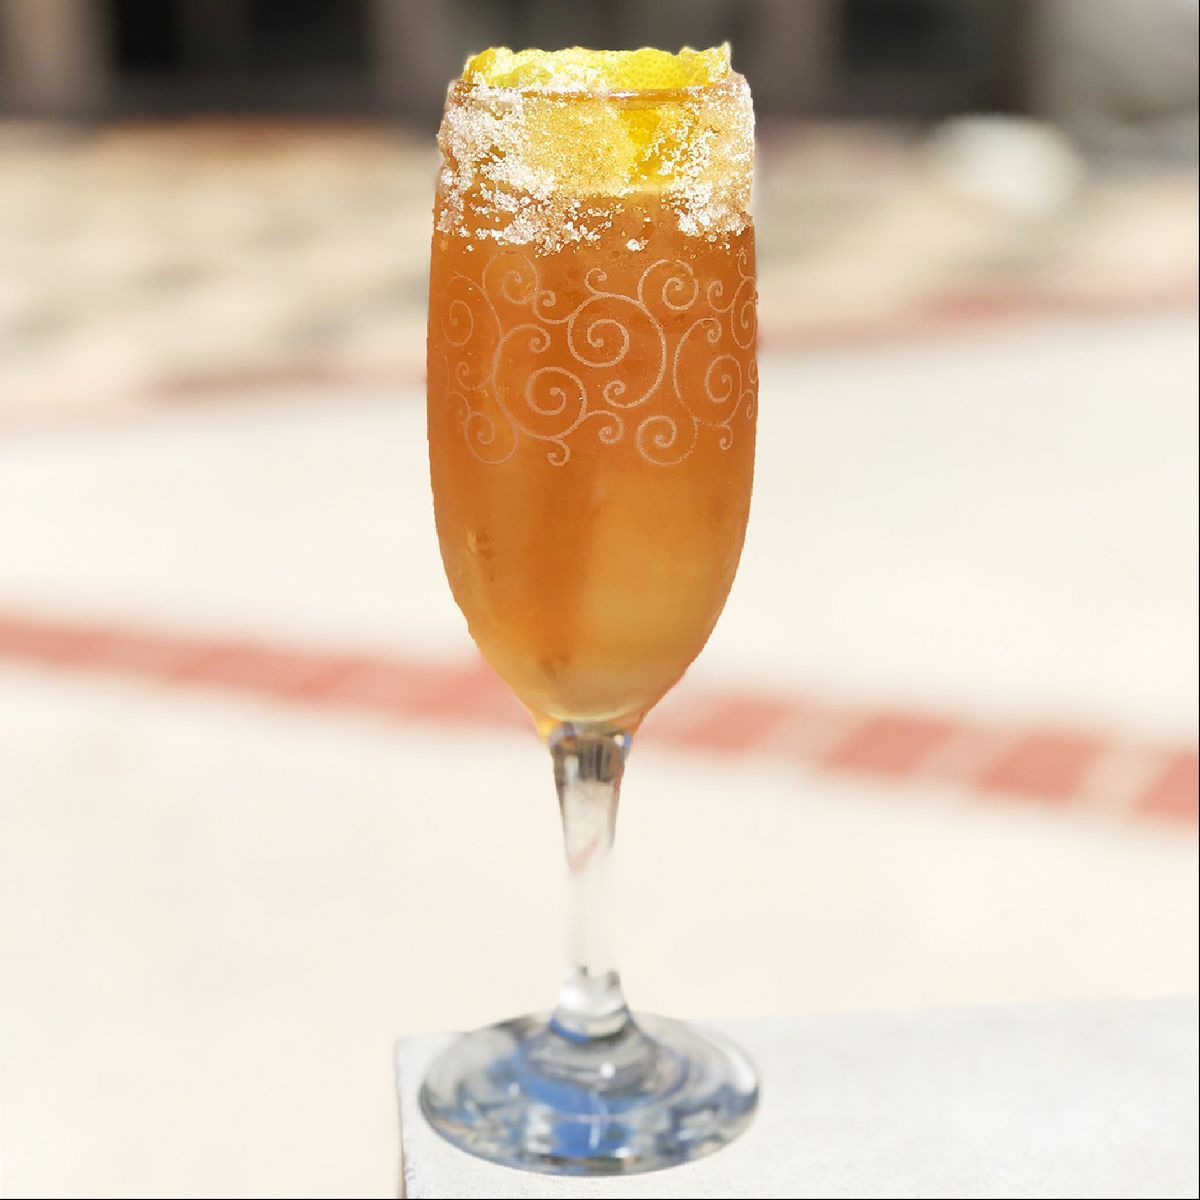 A classic New Orleans cocktail that predates even the Sazerac. It's notable that we call it a Brandy Crusta, as -- much like many other drink categories -- the